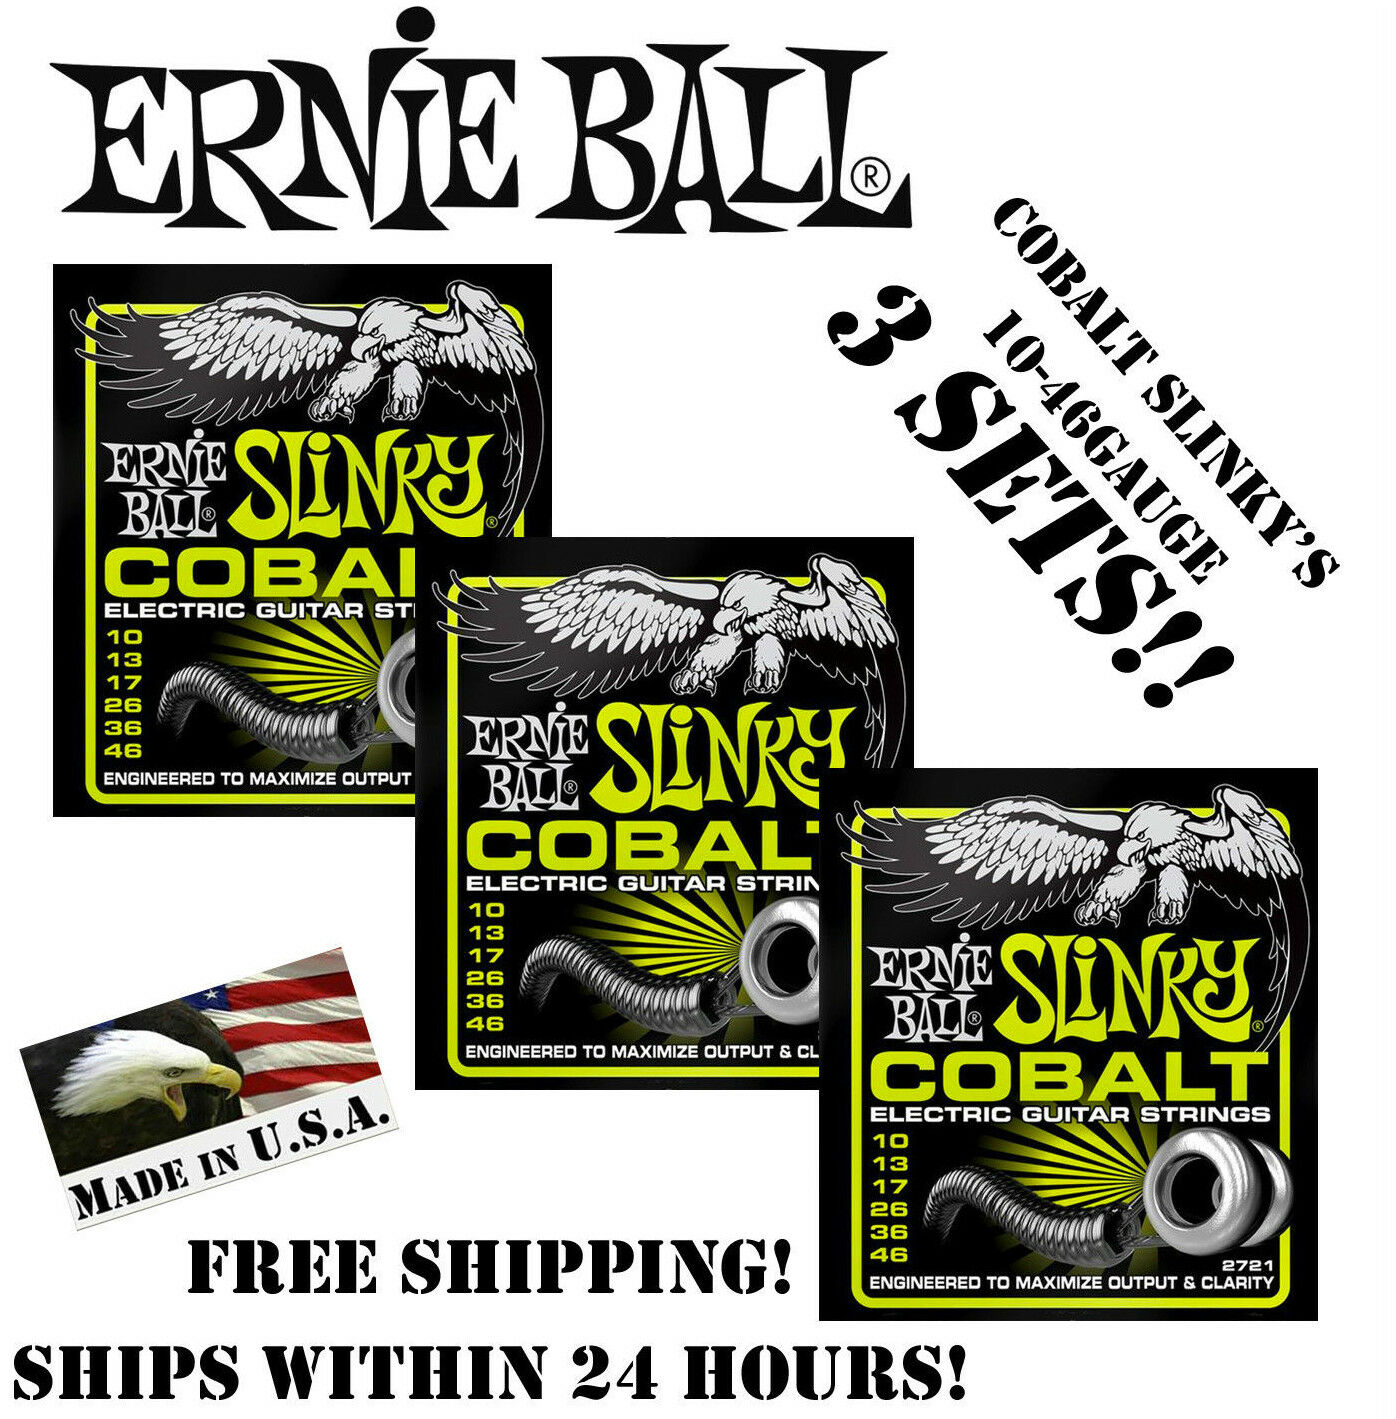 Ernie Ball 2721 Cobalt Regular Slinky Electric Guitar String